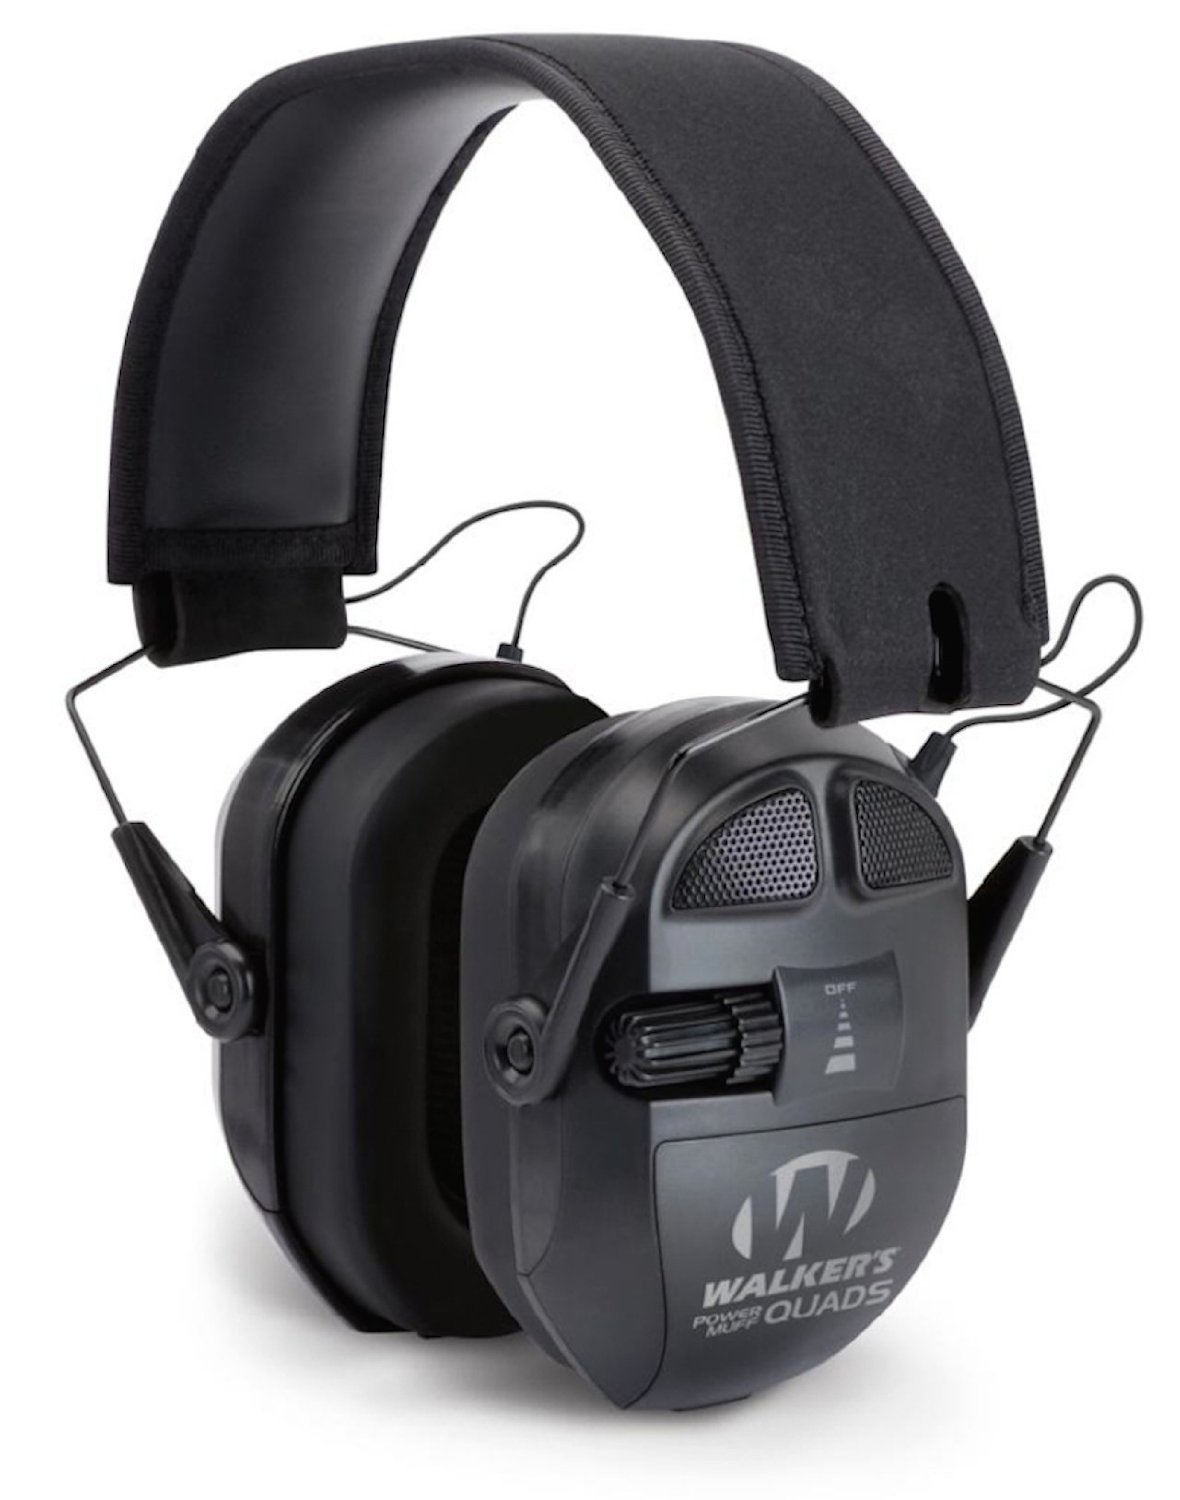 Black GSM Outdoors GWP-XPMQB Walkers Game Ear Ultimate Power Muff Quads with Adjustable Frequency Tuning//Electric